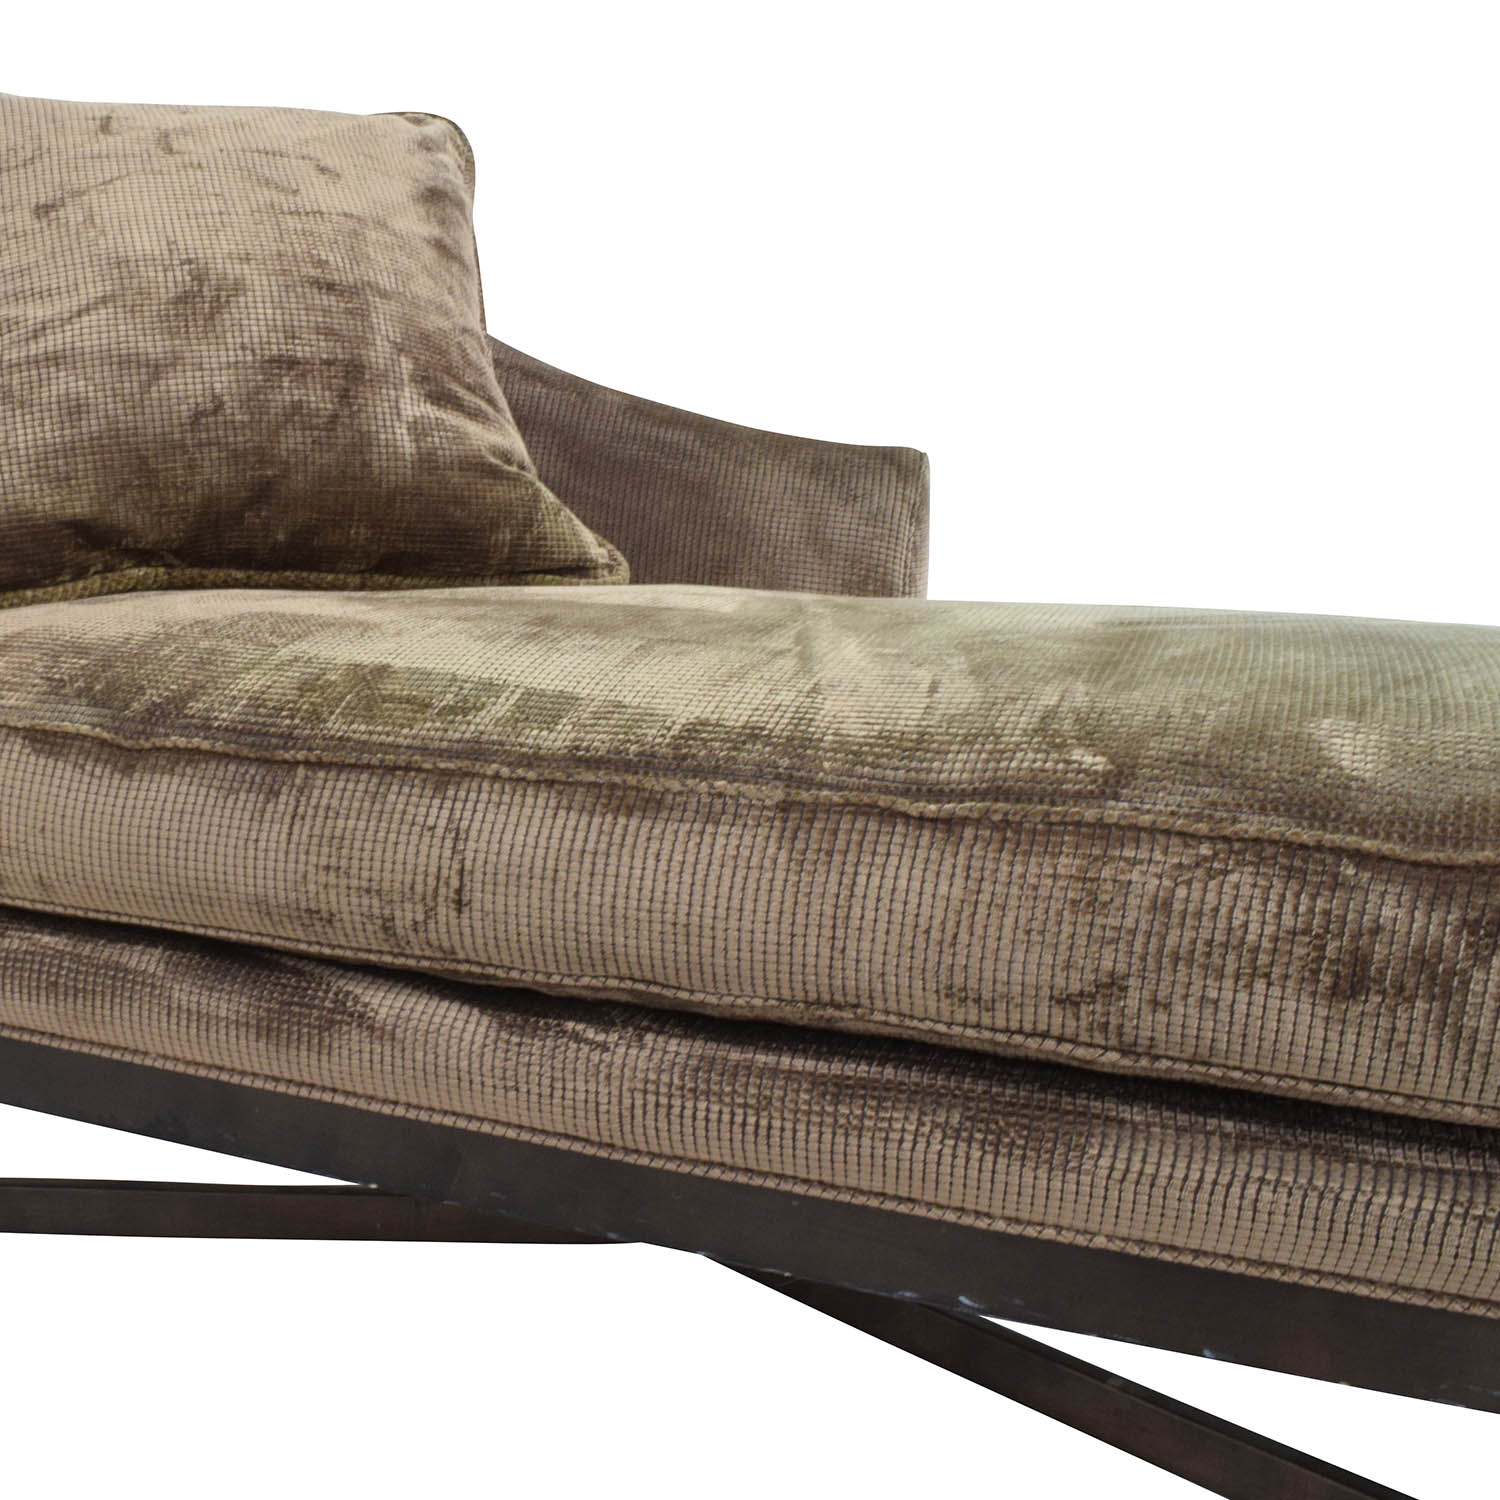 ... Swaim Swaim Custom Chaise Lounge for sale ...  sc 1 st  Furnishare : second hand chaise lounge - Sectionals, Sofas & Couches